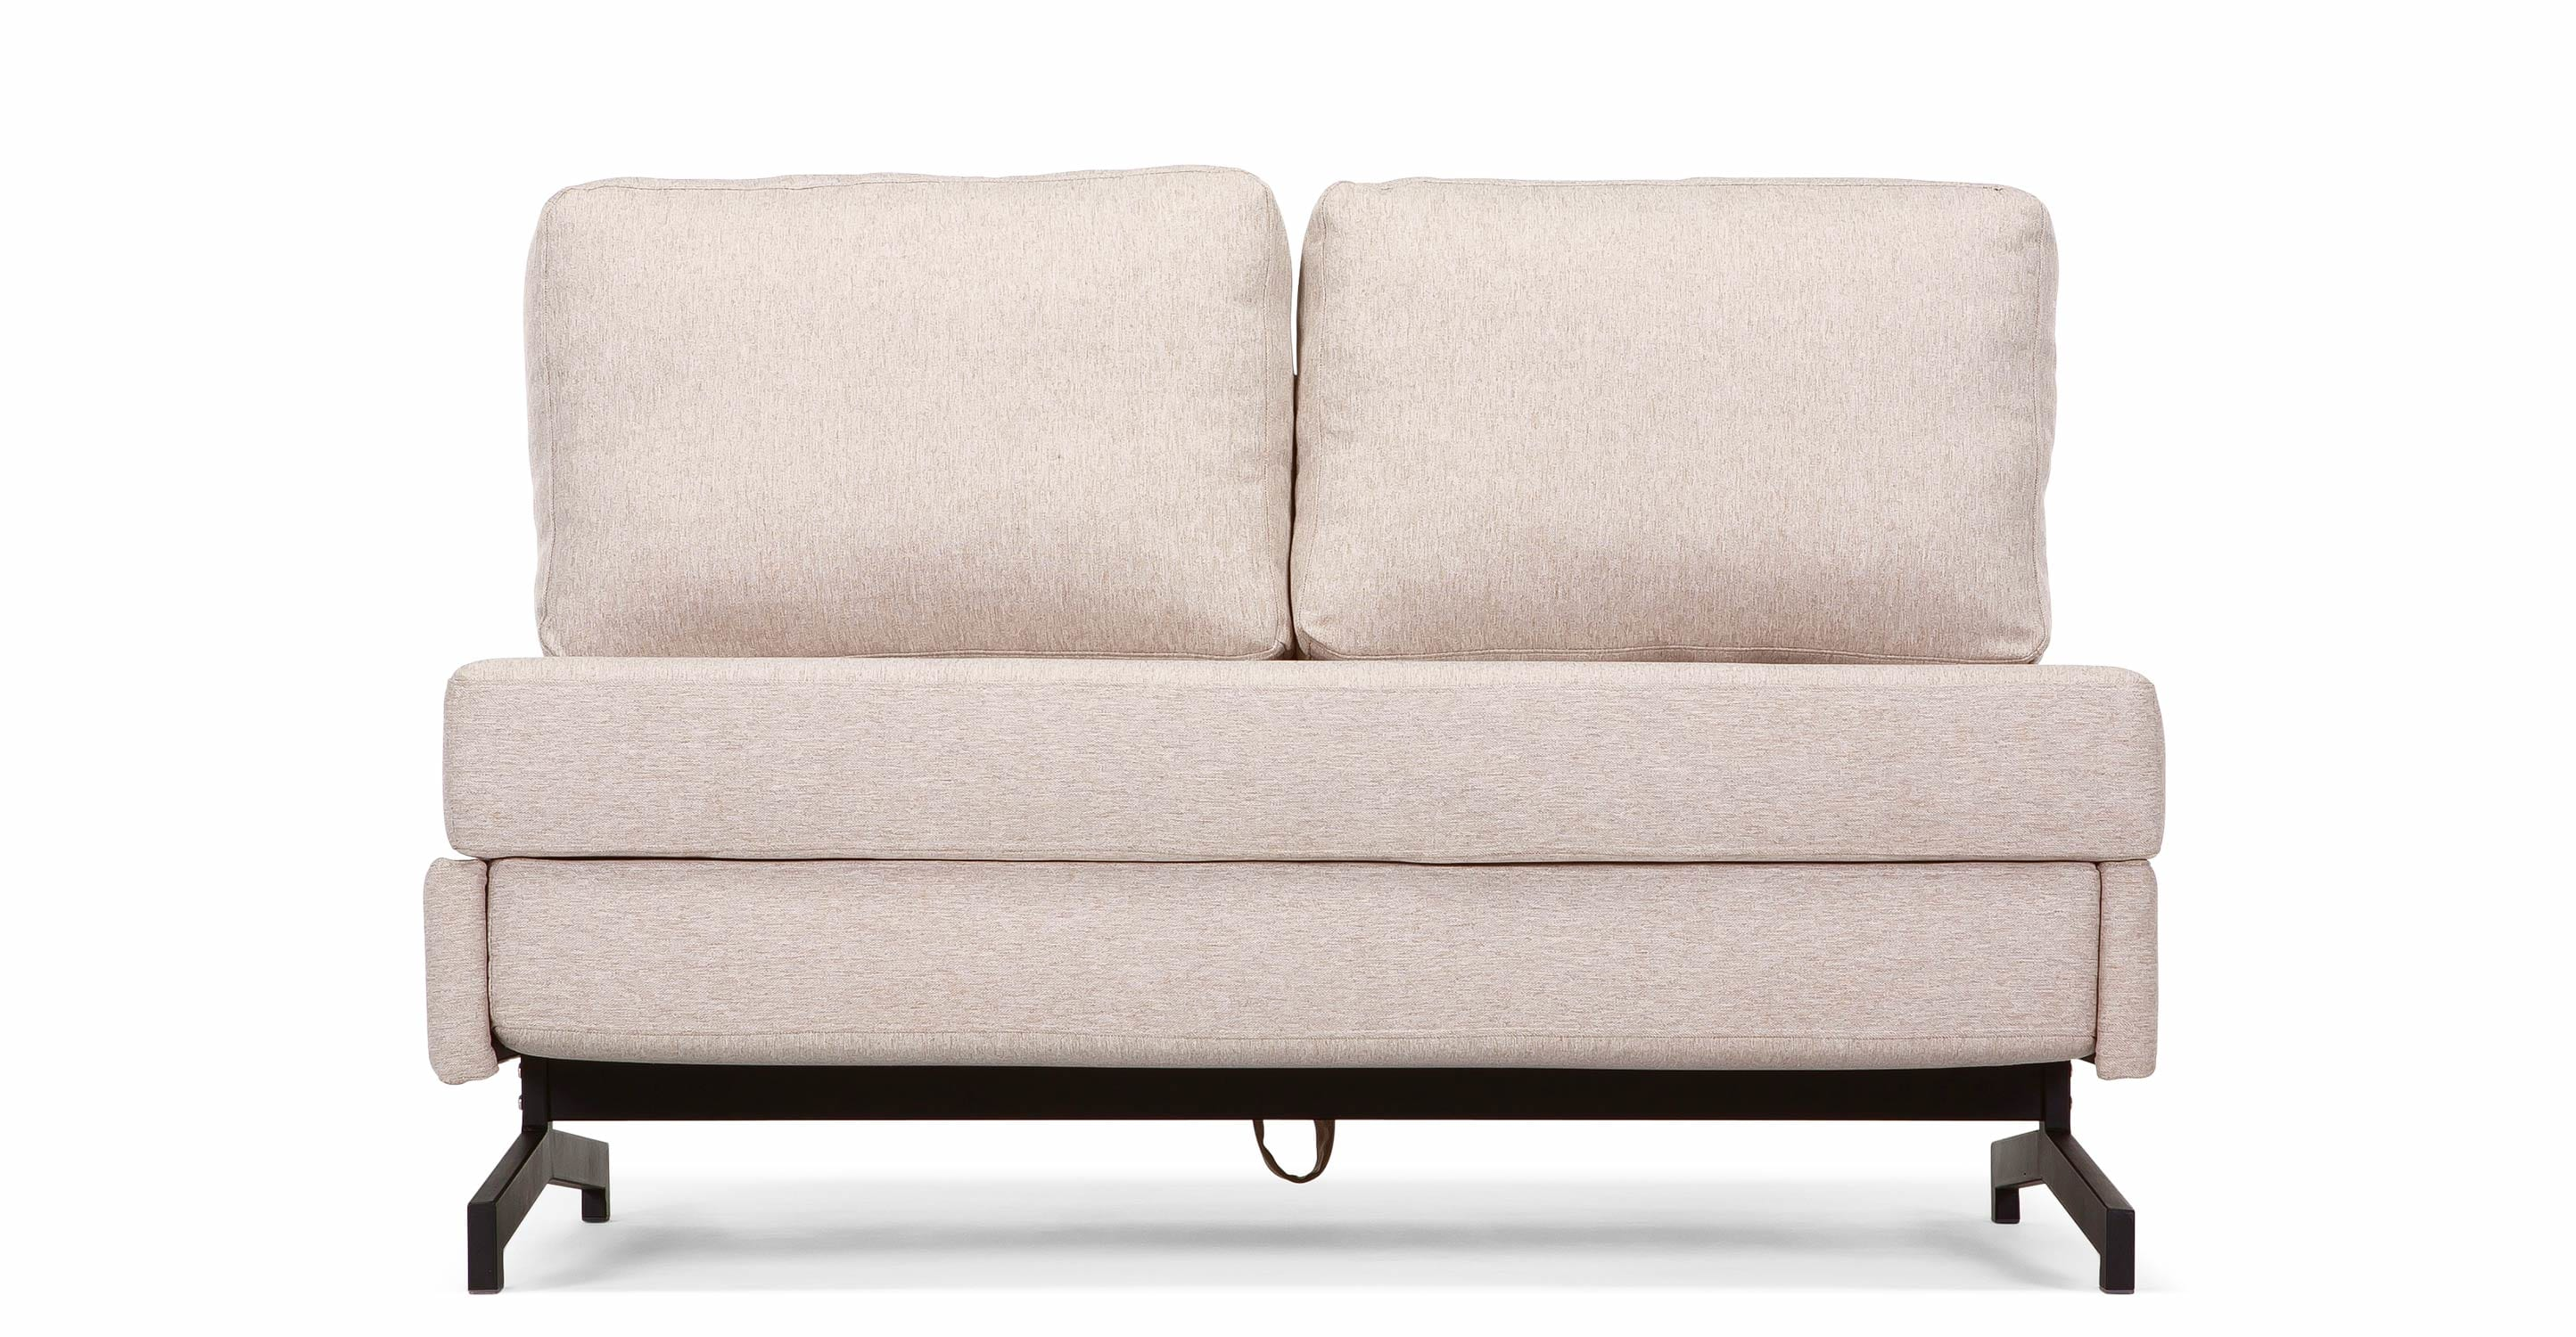 armless chair uk dxr racing motti sofa bed in pipit beige made